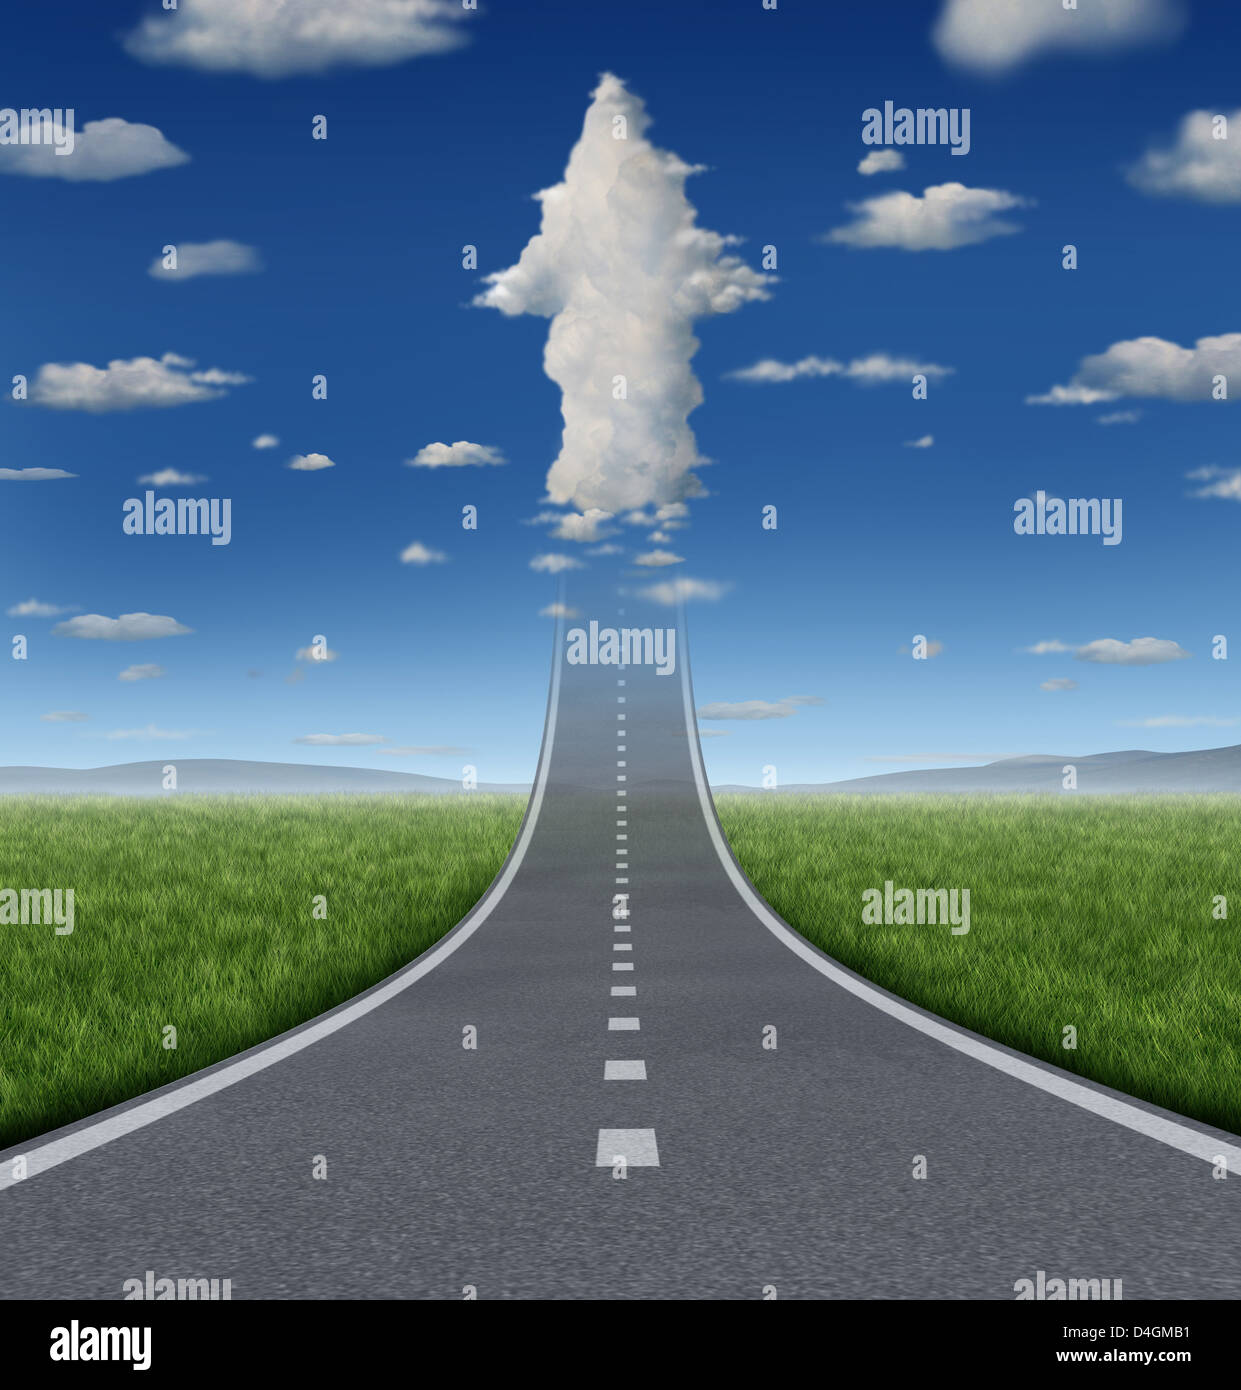 No limits success concept with a road or highway going forward fading into the sky with a group of clouds shaped - Stock Image